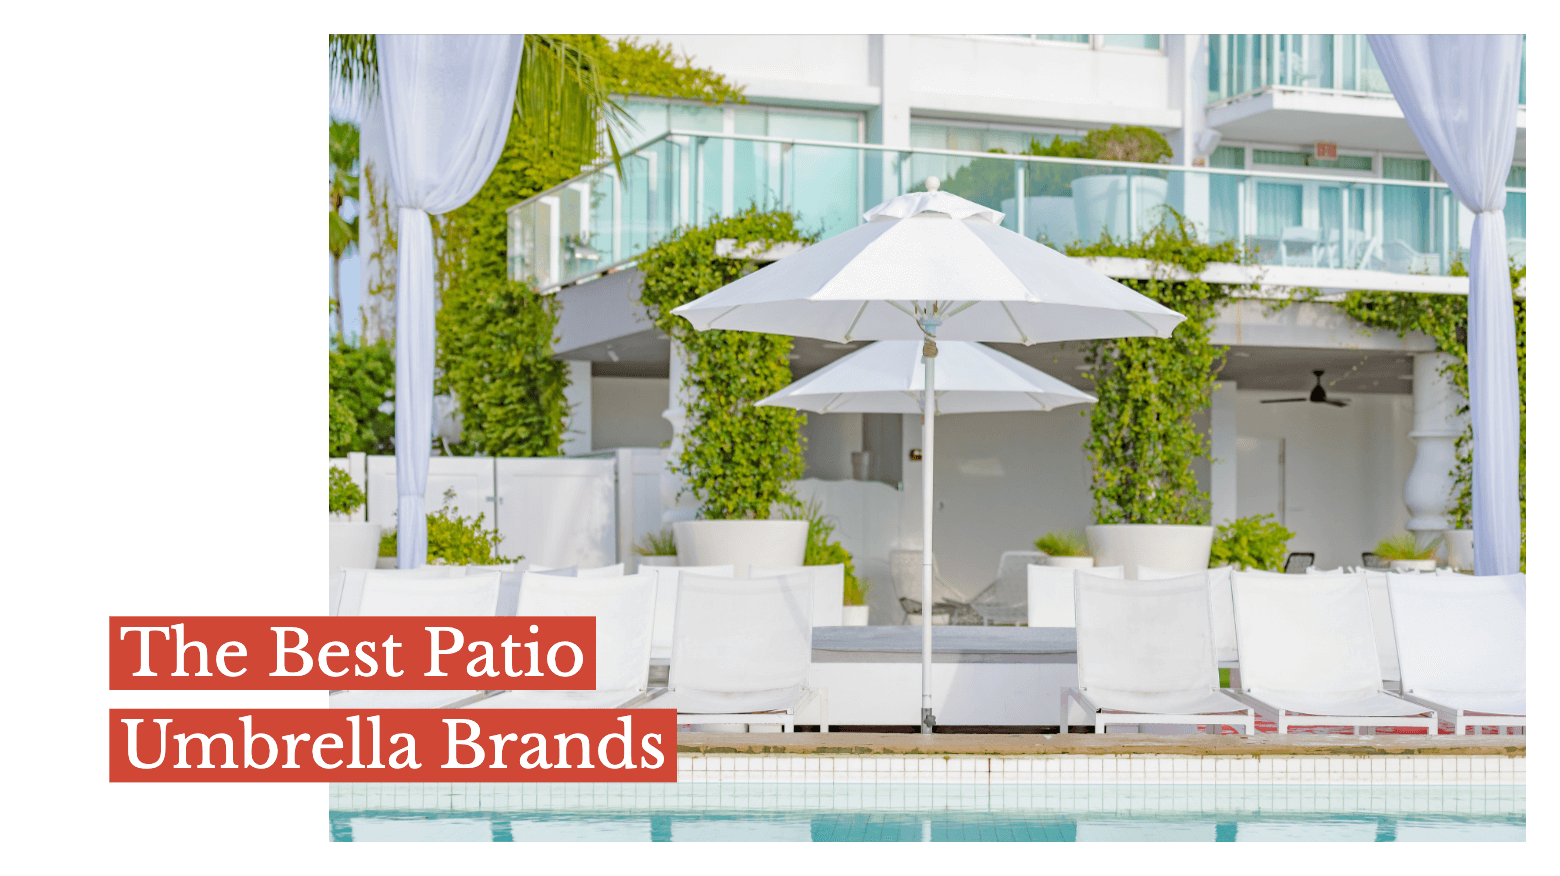 The Best Patio Umbrella Brands